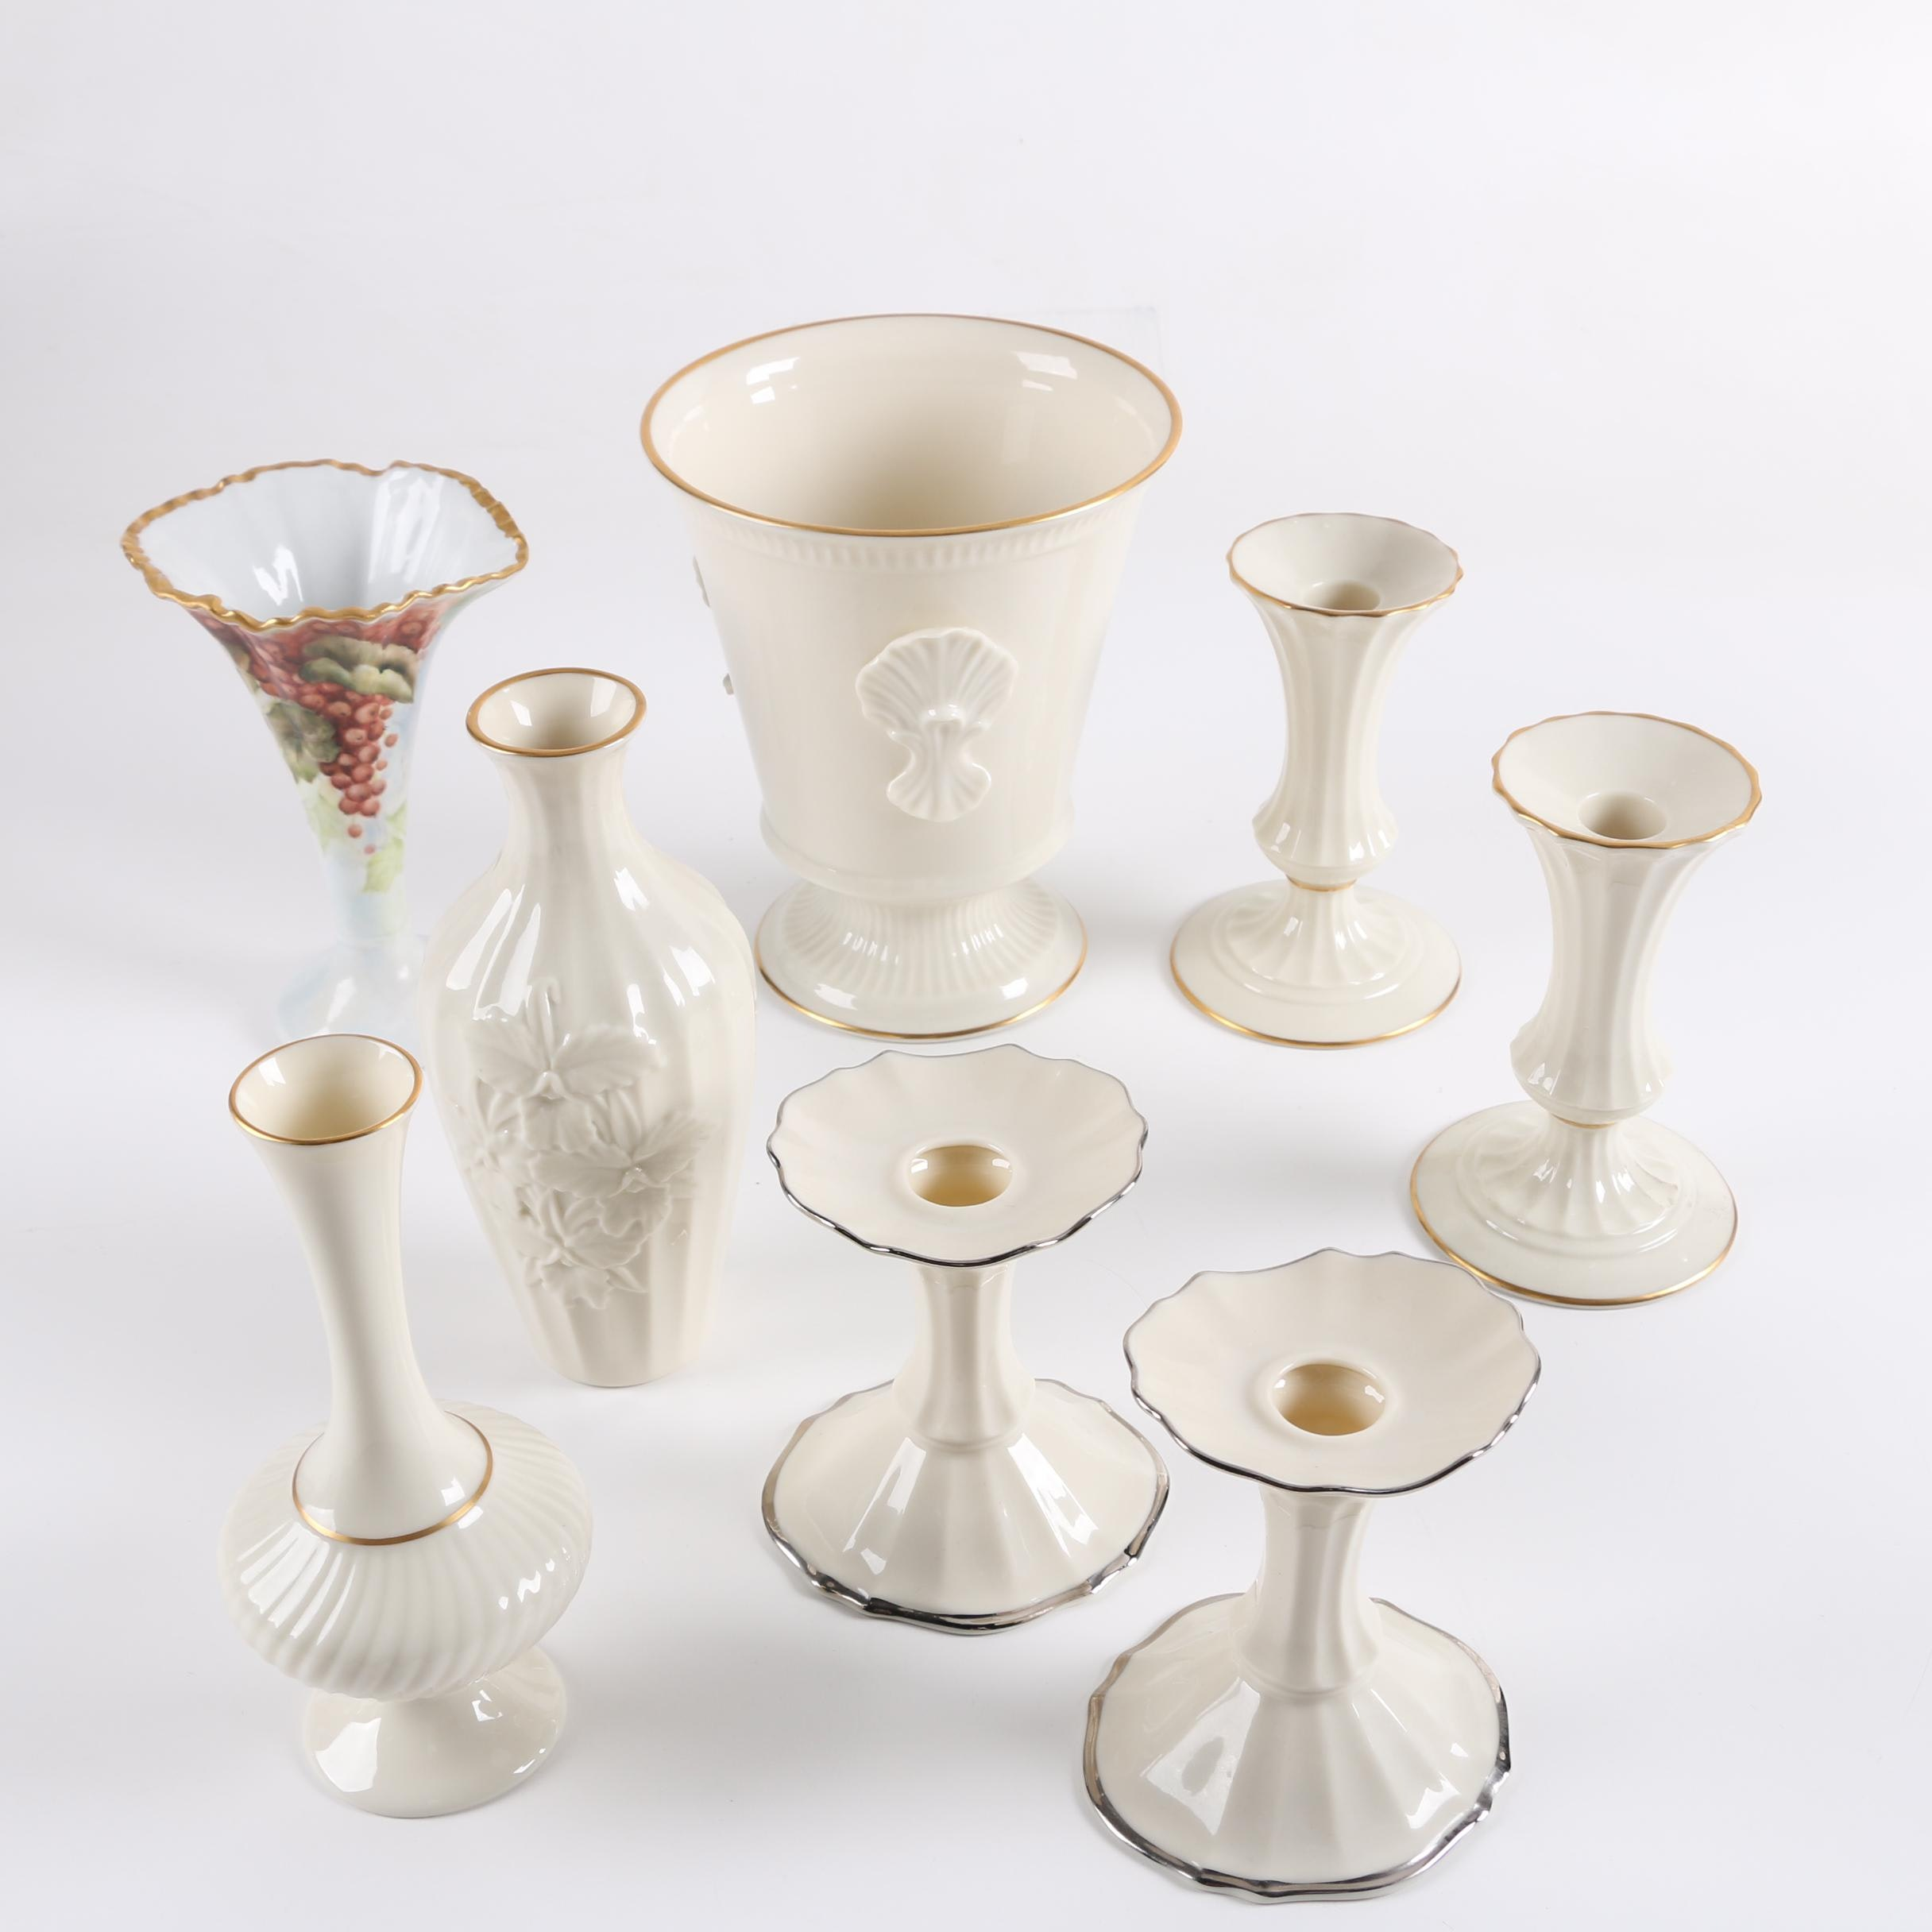 Lenox Porcelain Candlesticks and Vases